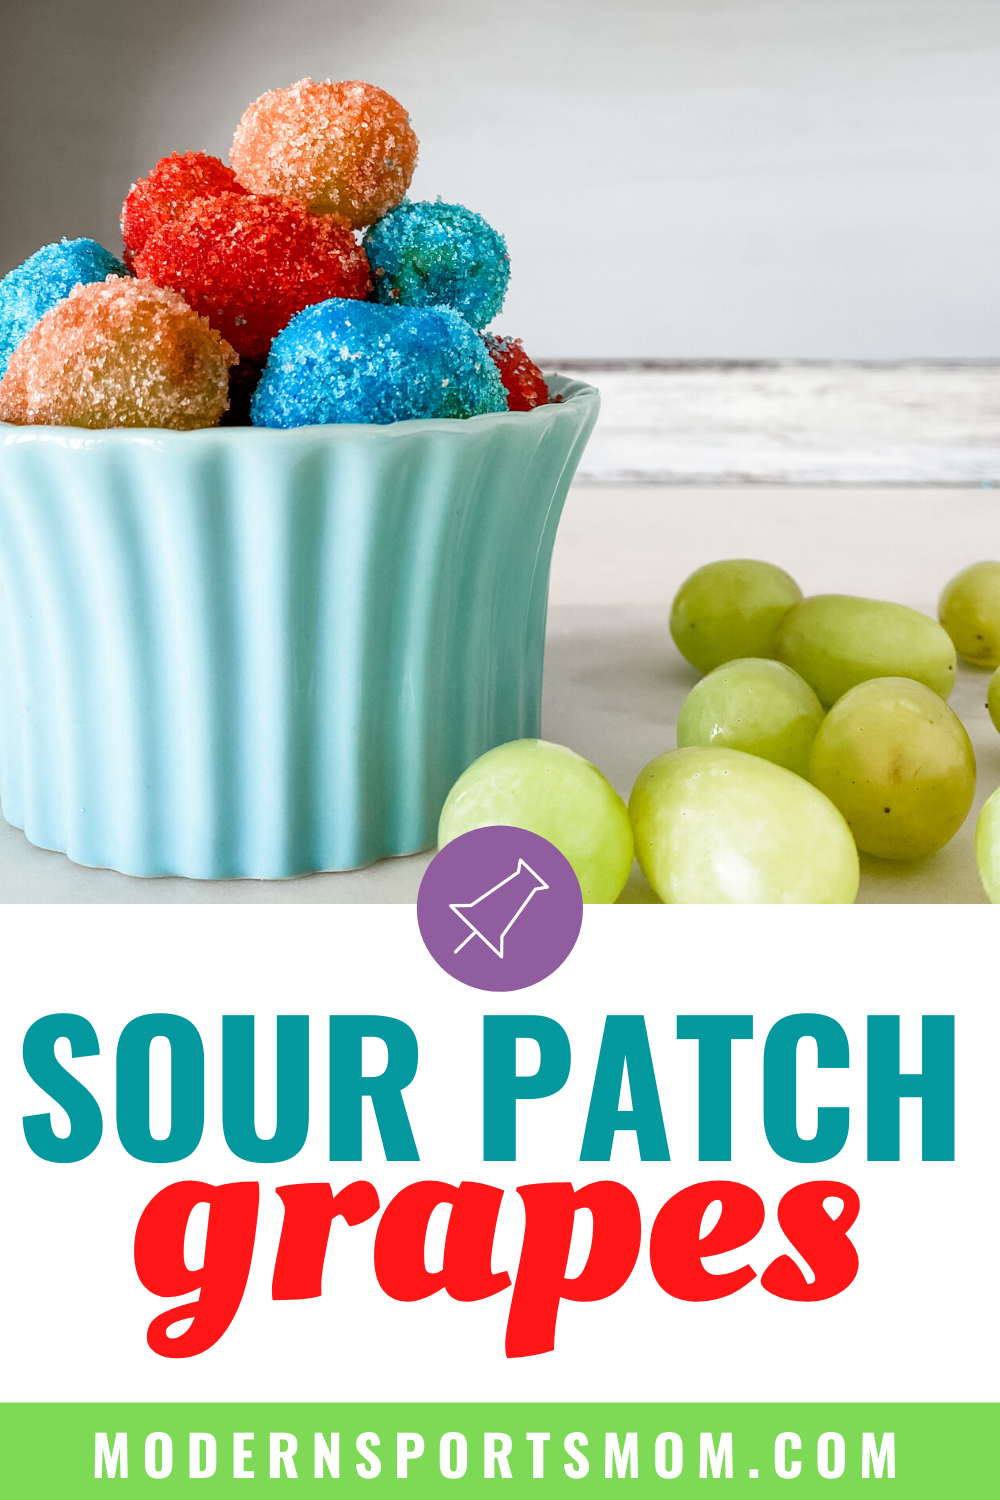 candy grapes or sour patch grapes, healthier option for kids